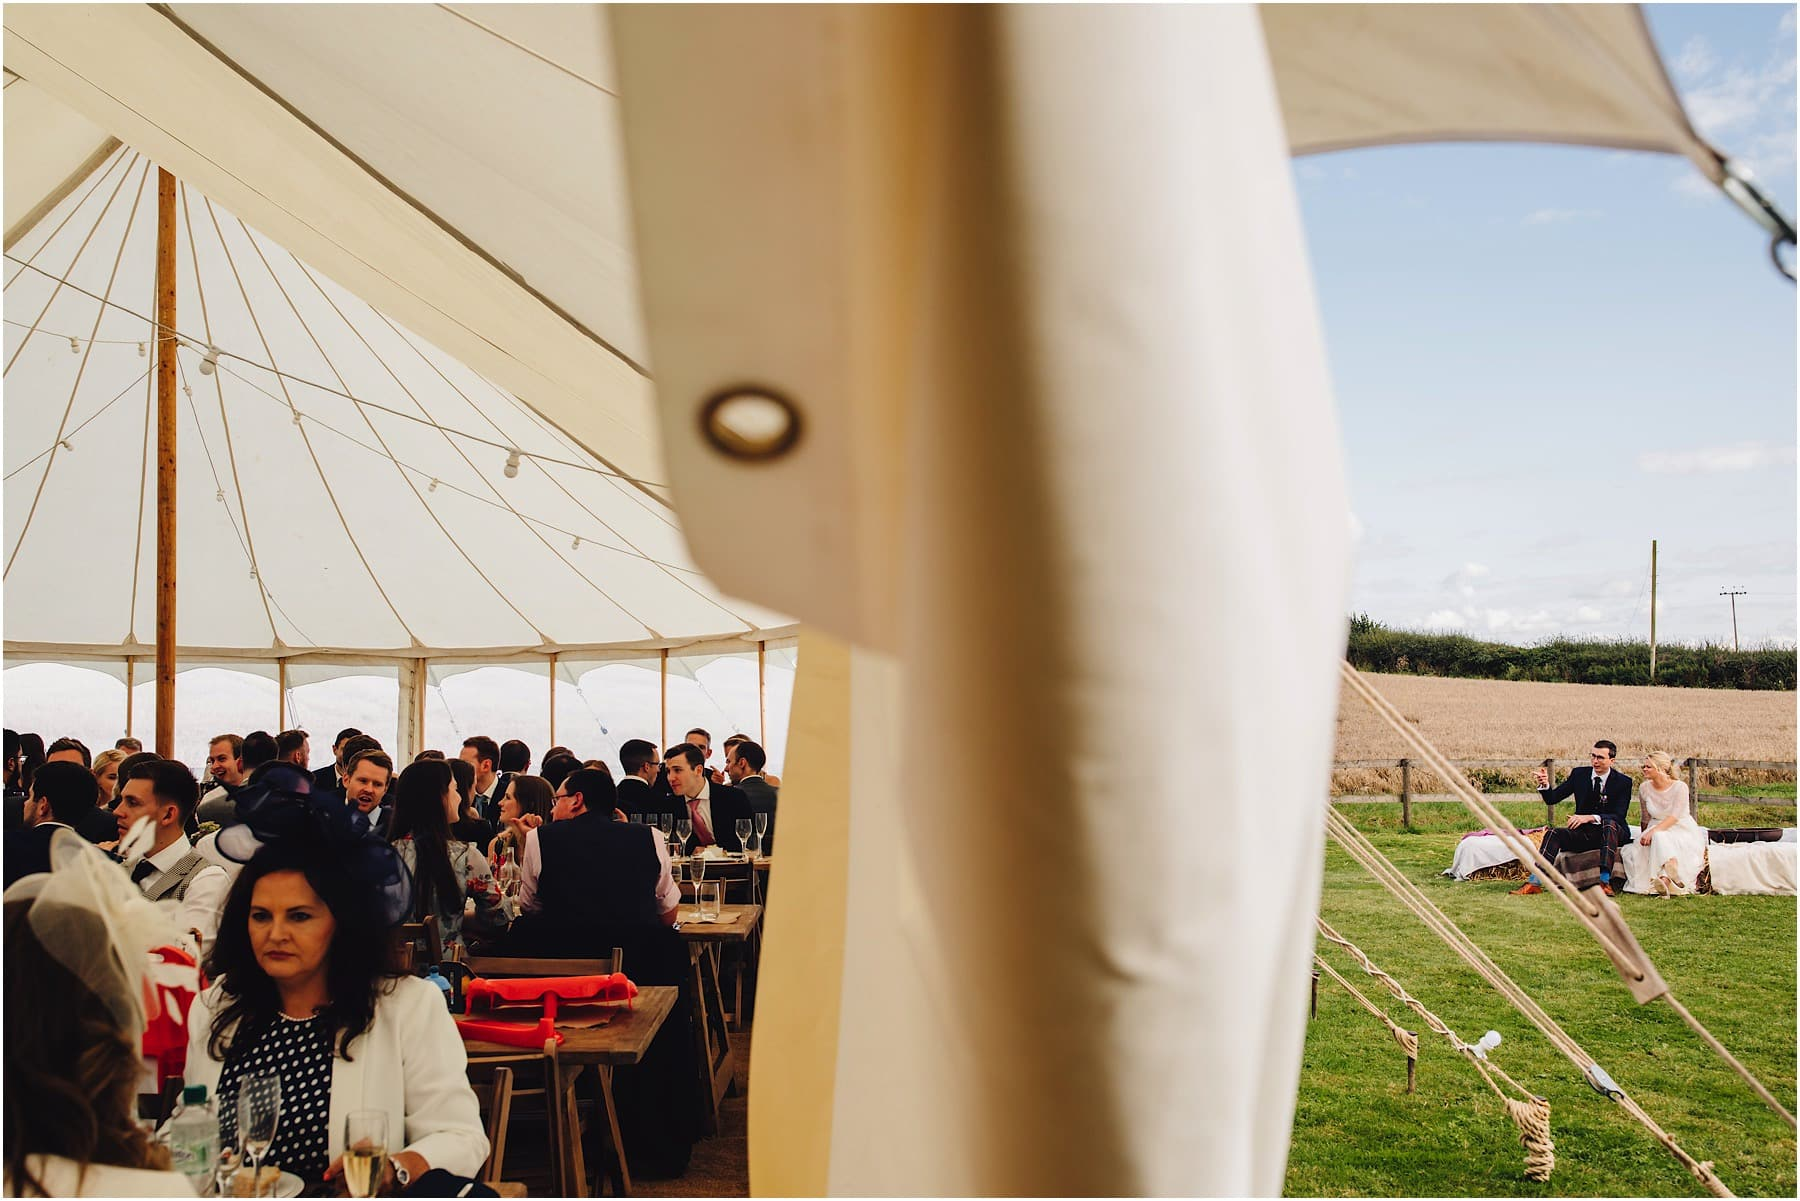 wedding guests in a marquee with bride and groom outside